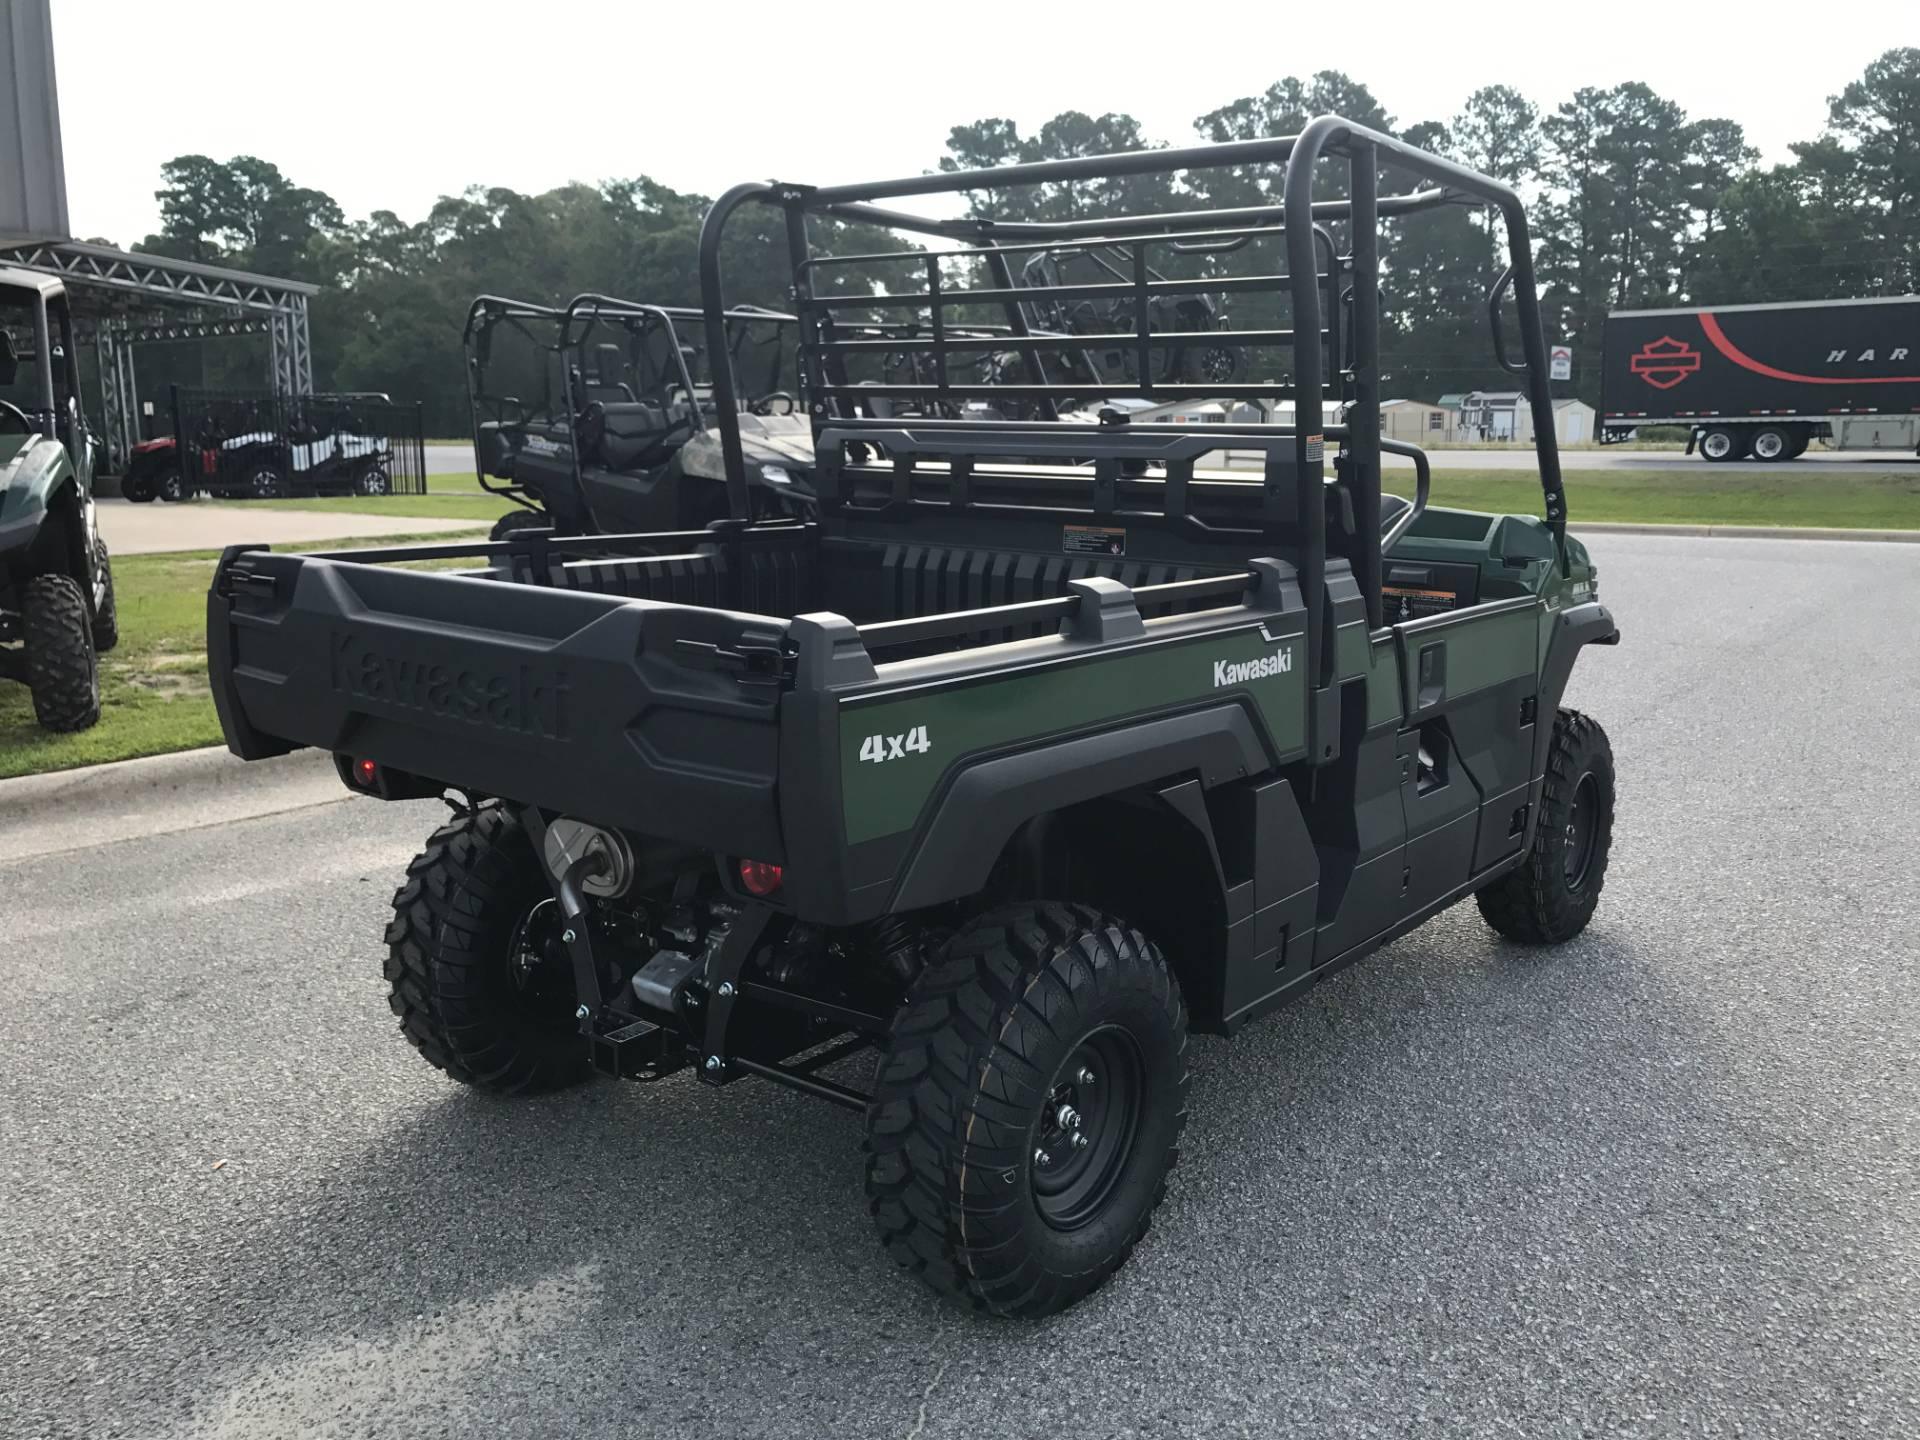 2018 Kawasaki Mule PRO-FX EPS in Greenville, North Carolina - Photo 13